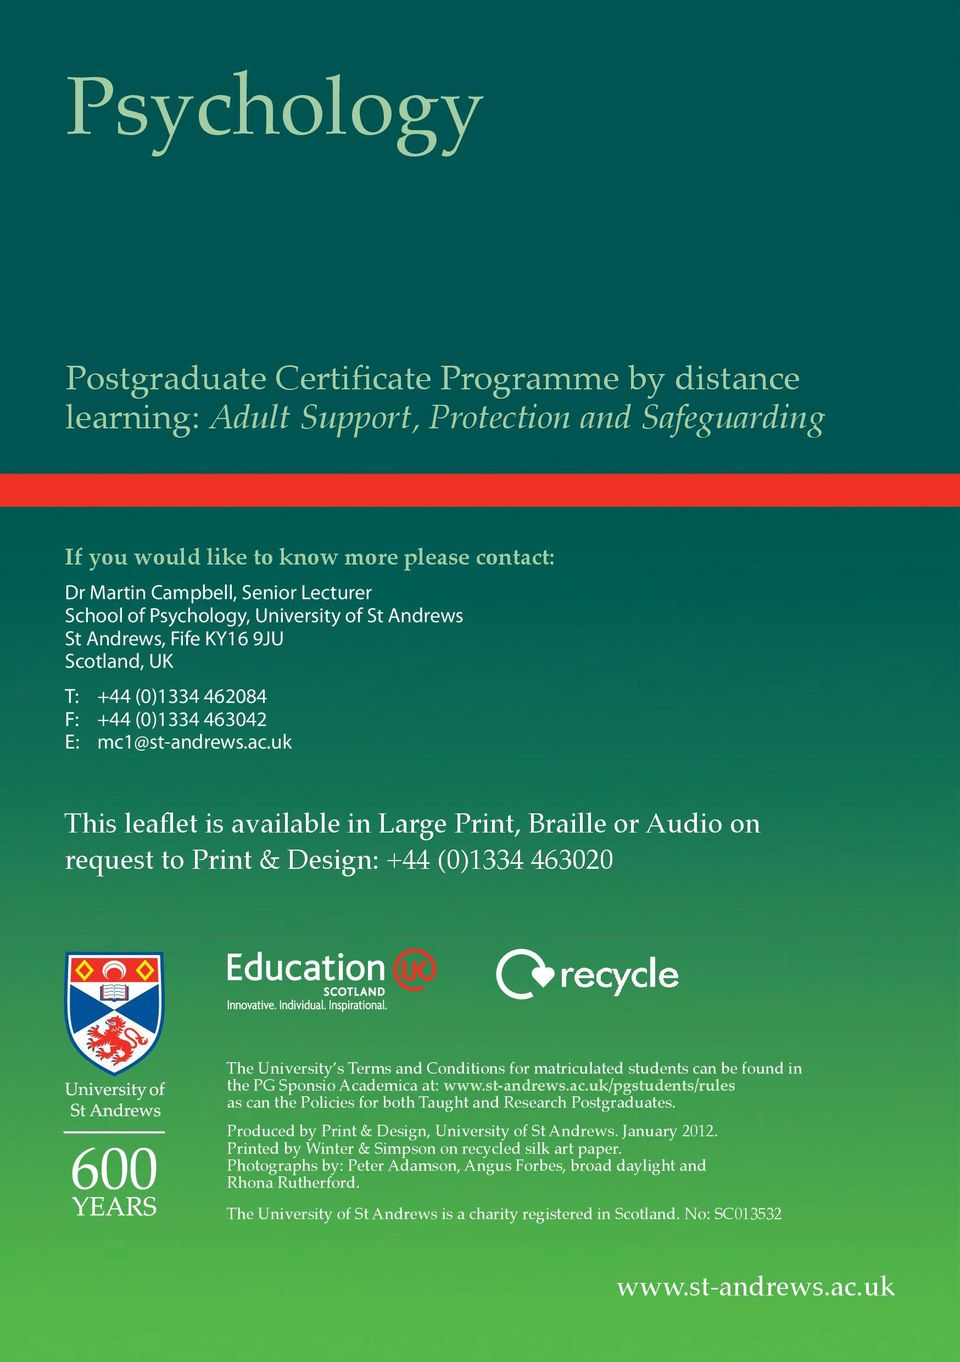 uk This leaflet is available in Large Print, Braille or Audio on request to Print & Design: +44 (0)1334 463020 The University s Terms and Conditions for matriculated students can be found in the PG